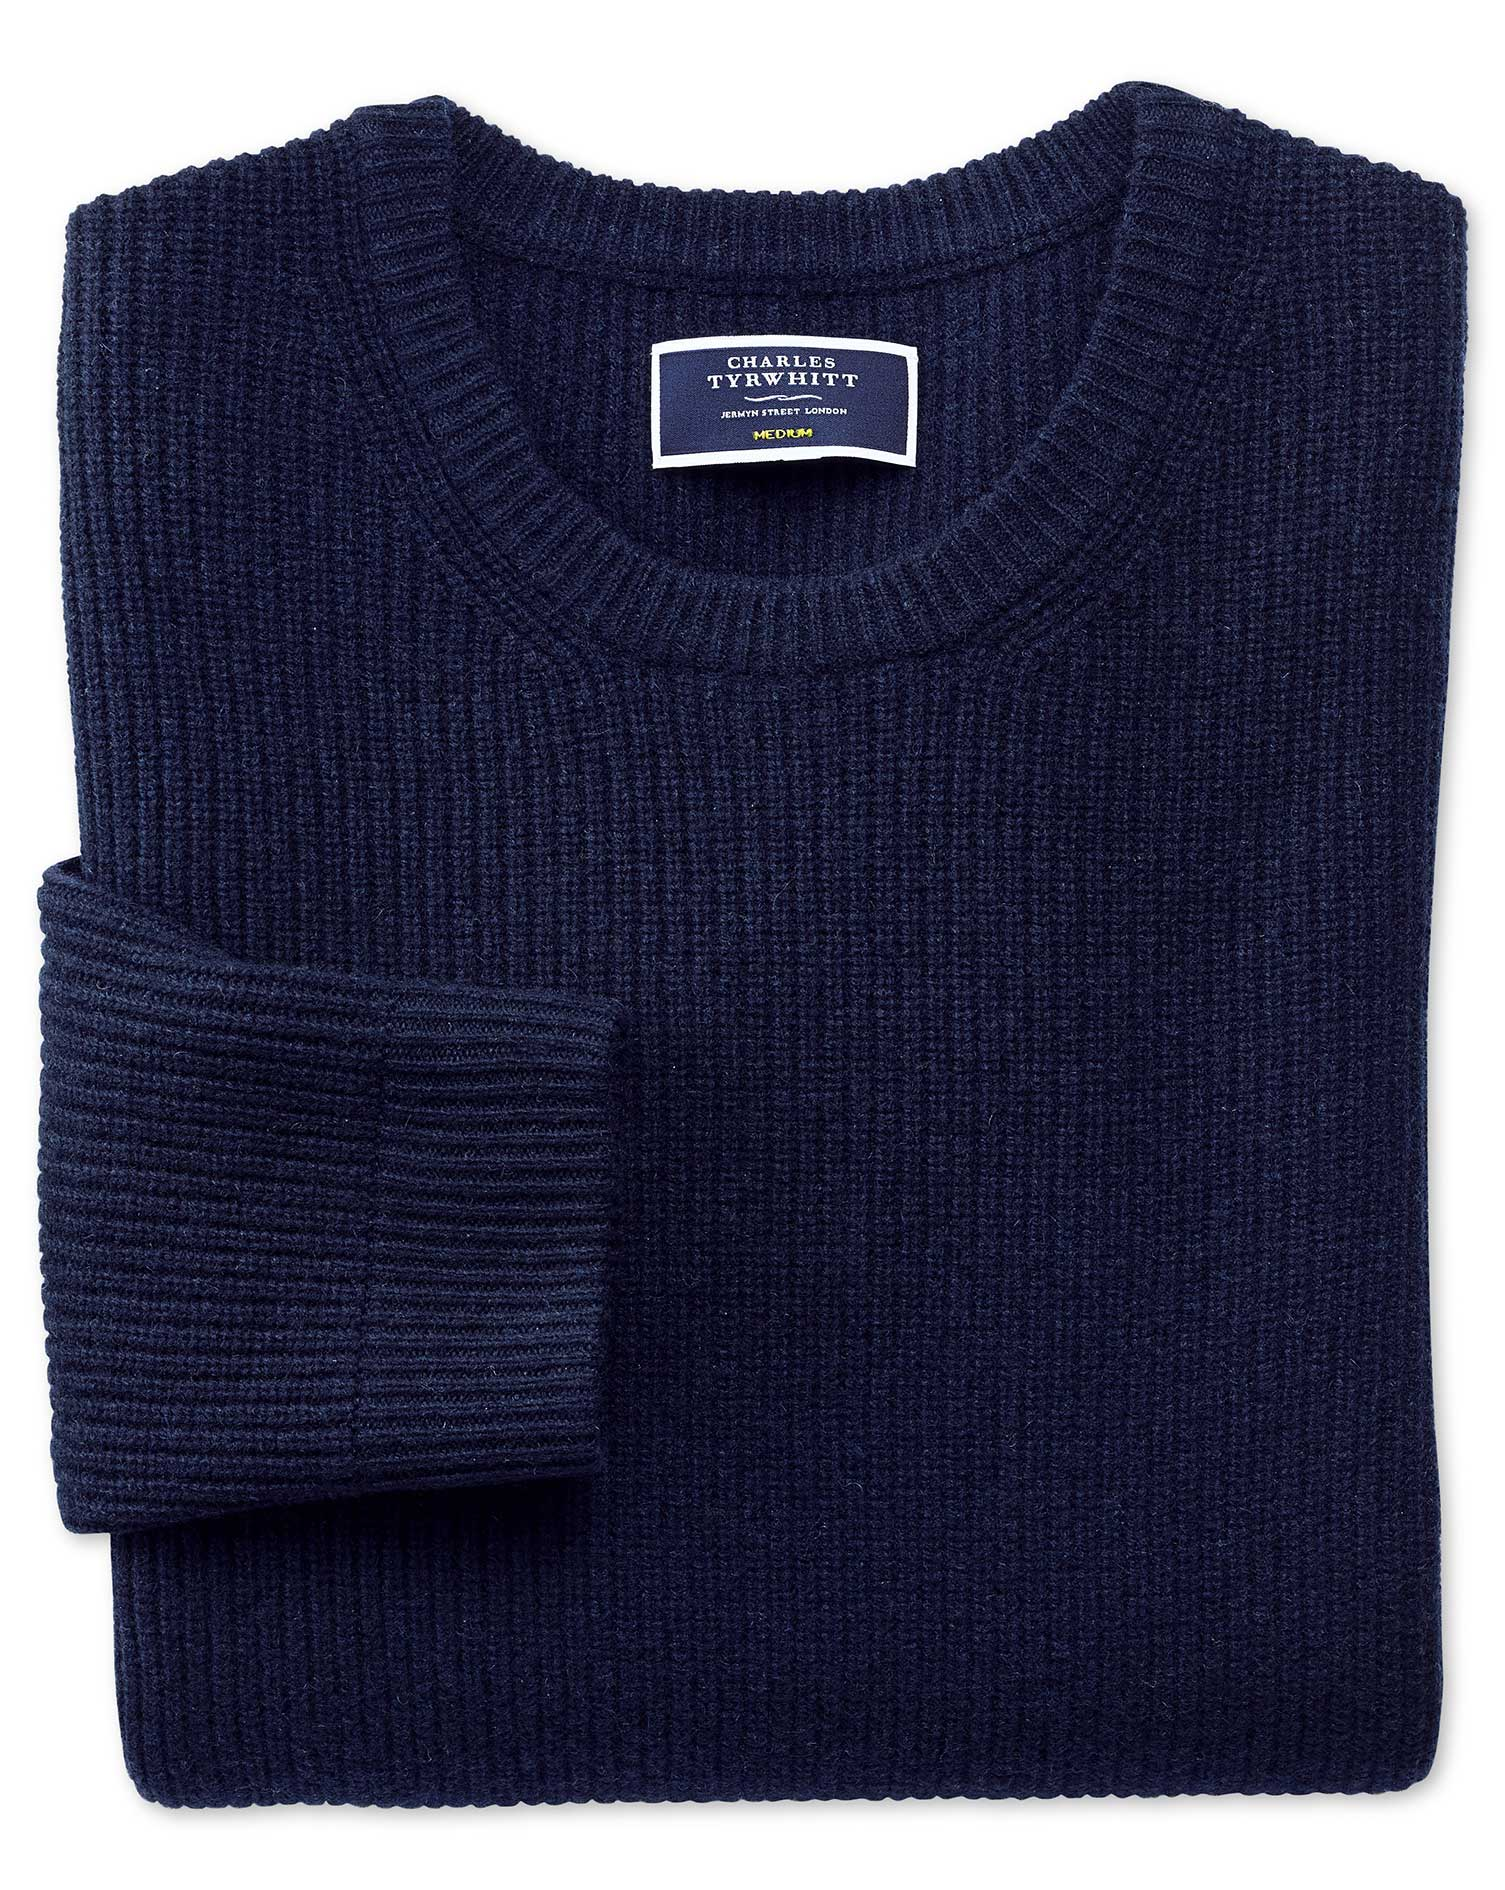 Navy Lambswool Rib Crew Neck Jumper Size Small by Charles Tyrwhitt